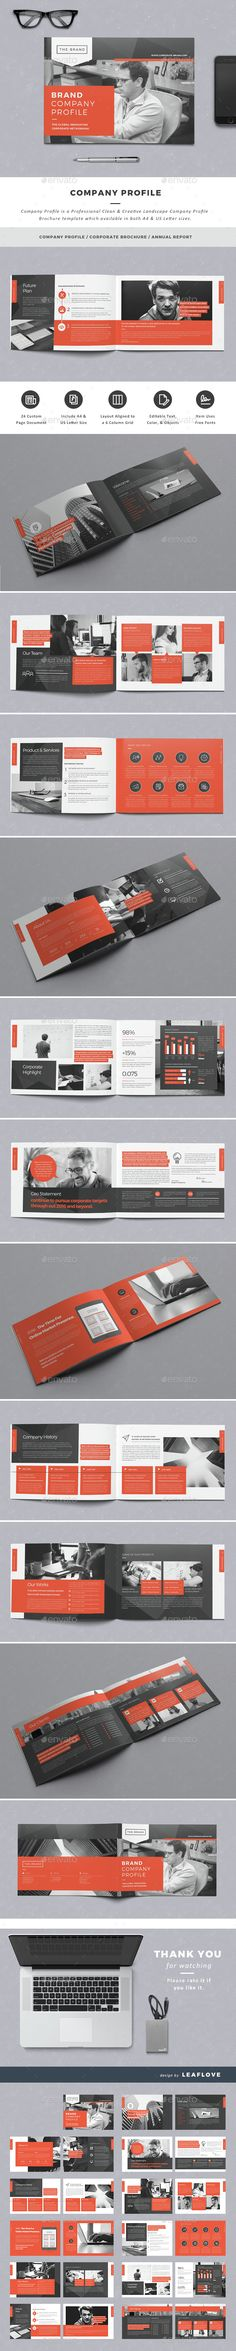 Company Profile Brochure Template InDesign INDD. Download here: http://graphicriver.net/item/company-profile/15021996?ref=ksioks